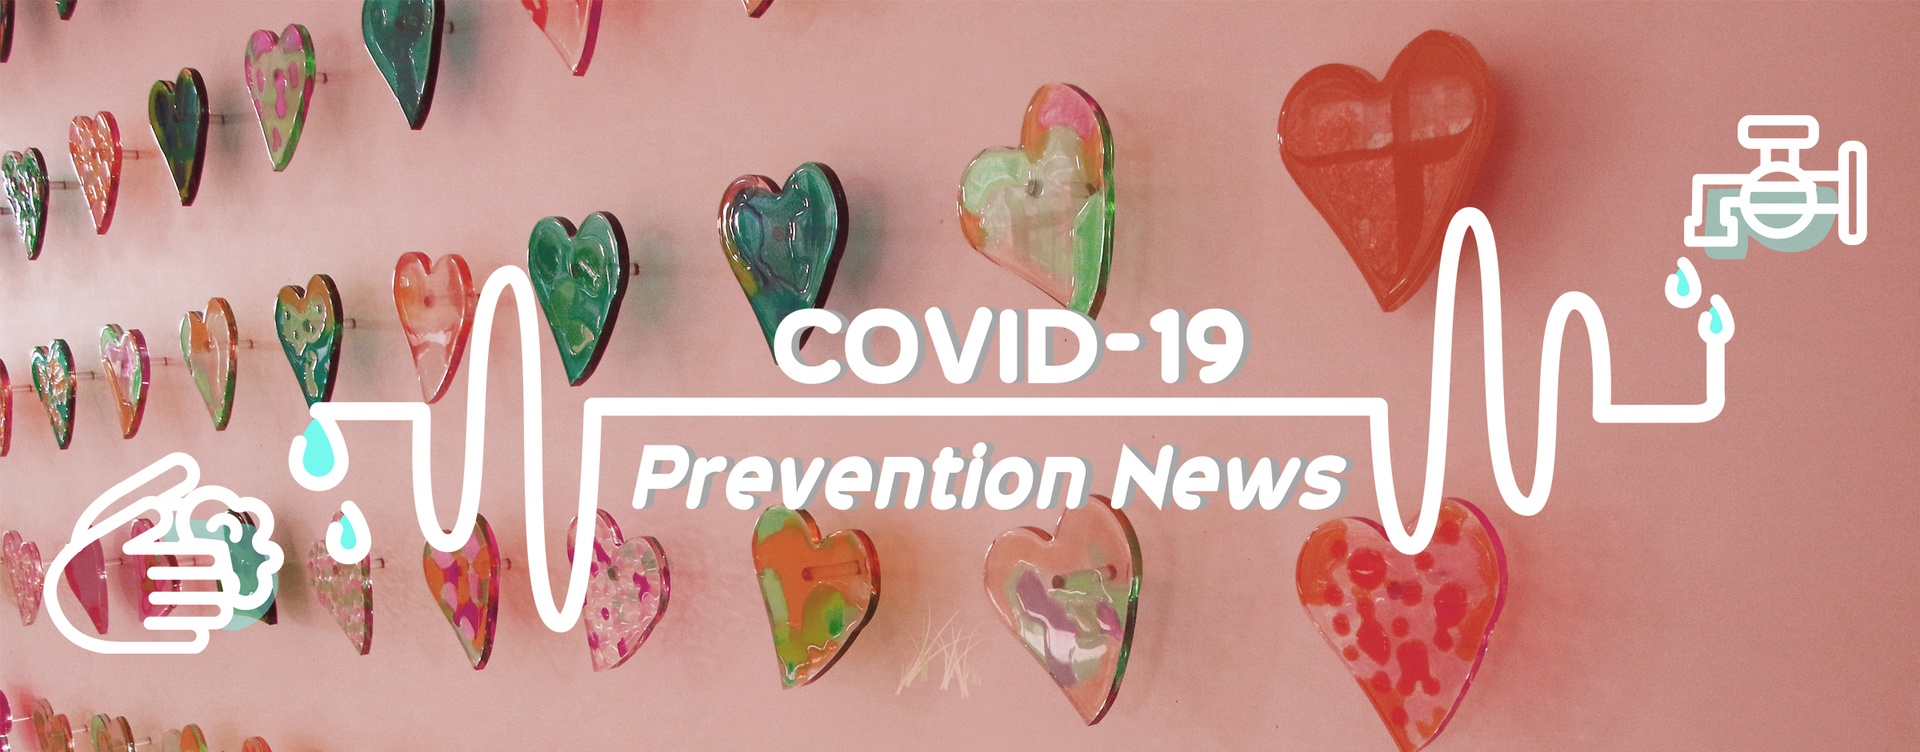 Coronavirus disease 2019 (COVID-19) Prevention News(Open new window)